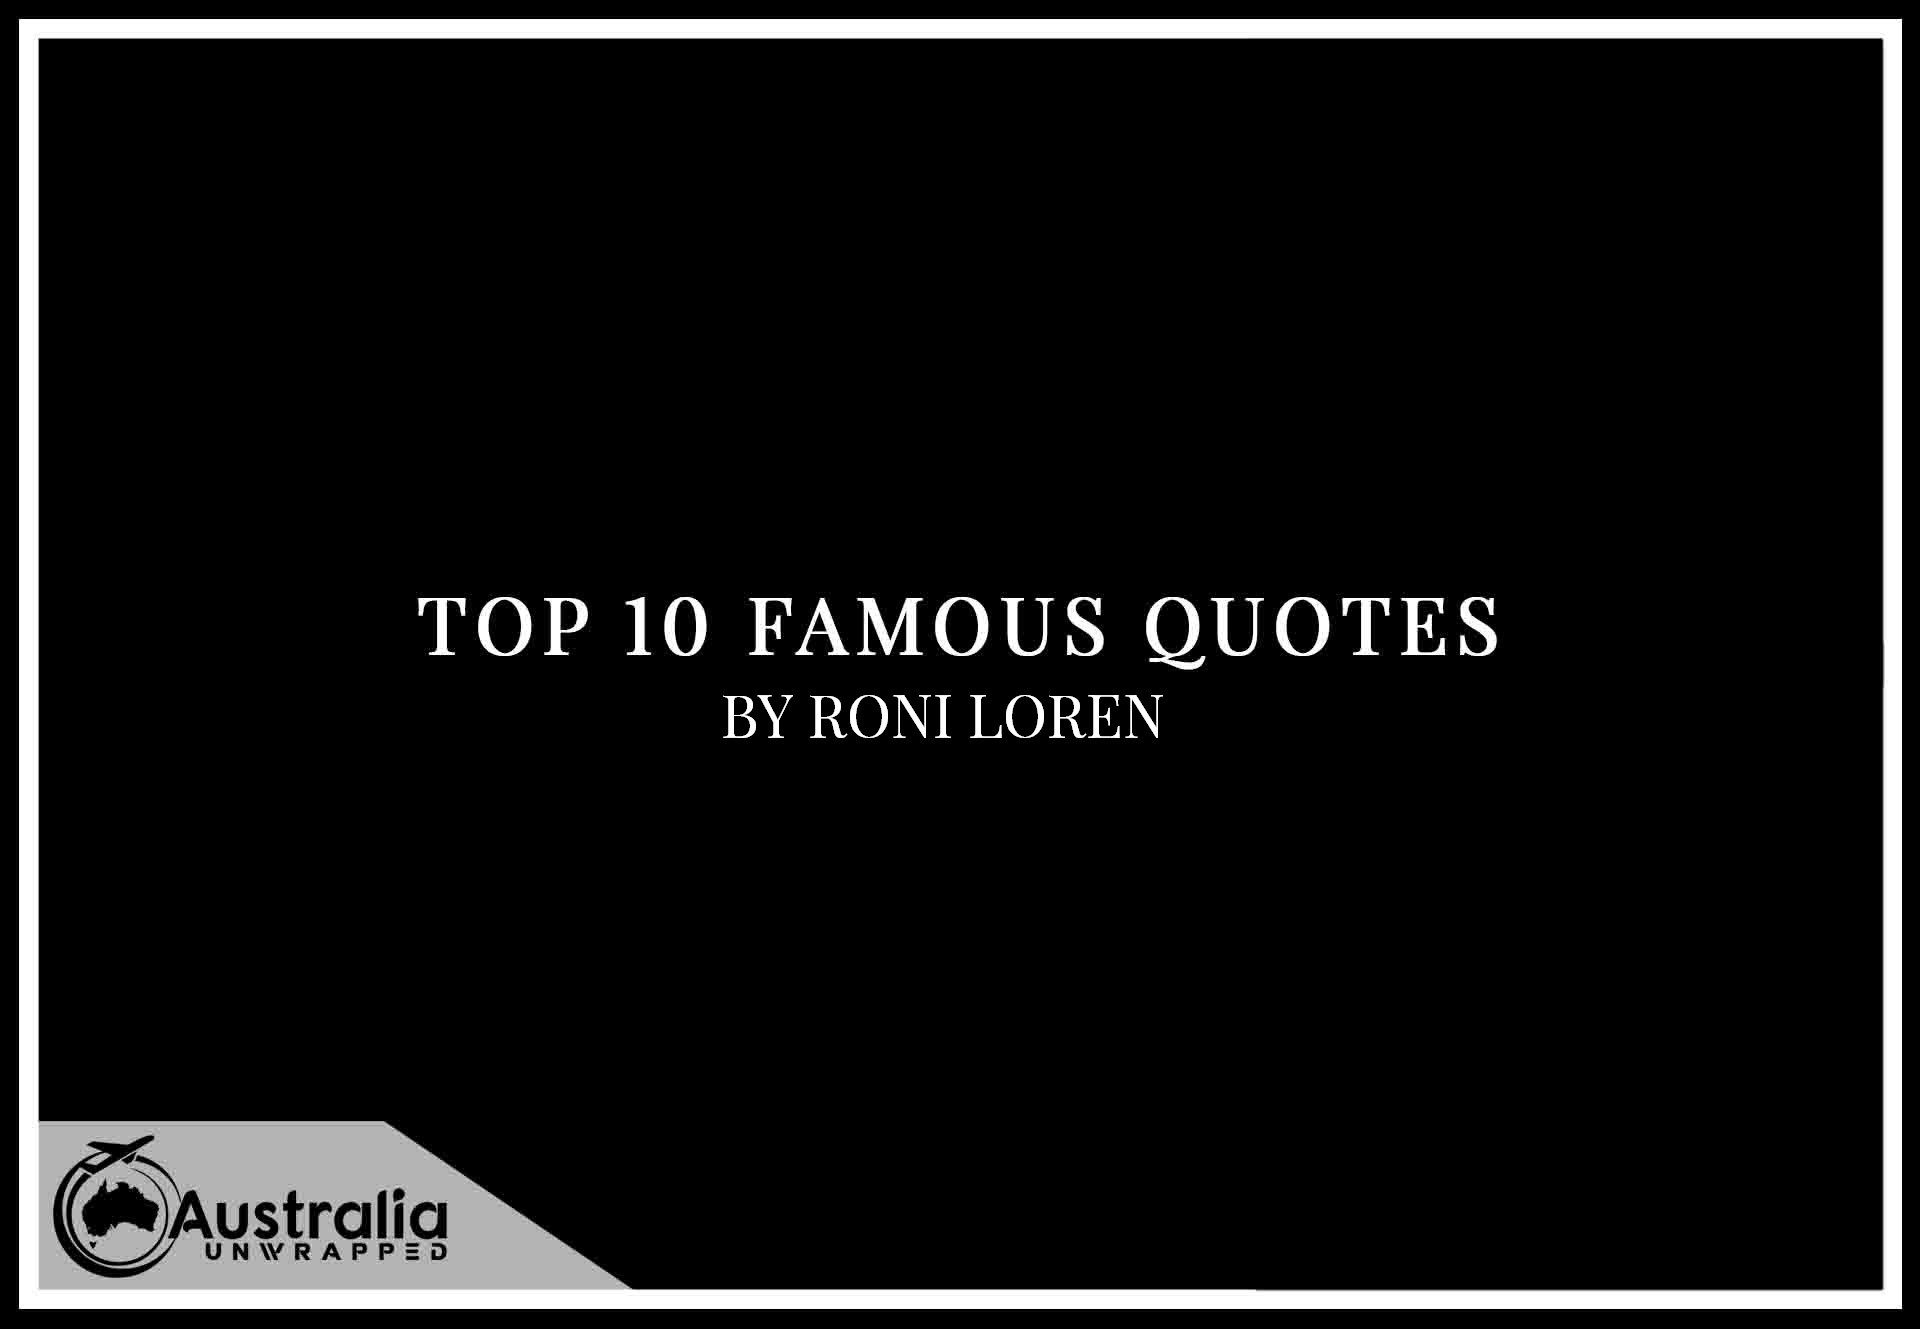 Top 10 Famous Quotes by Author Roni Loren